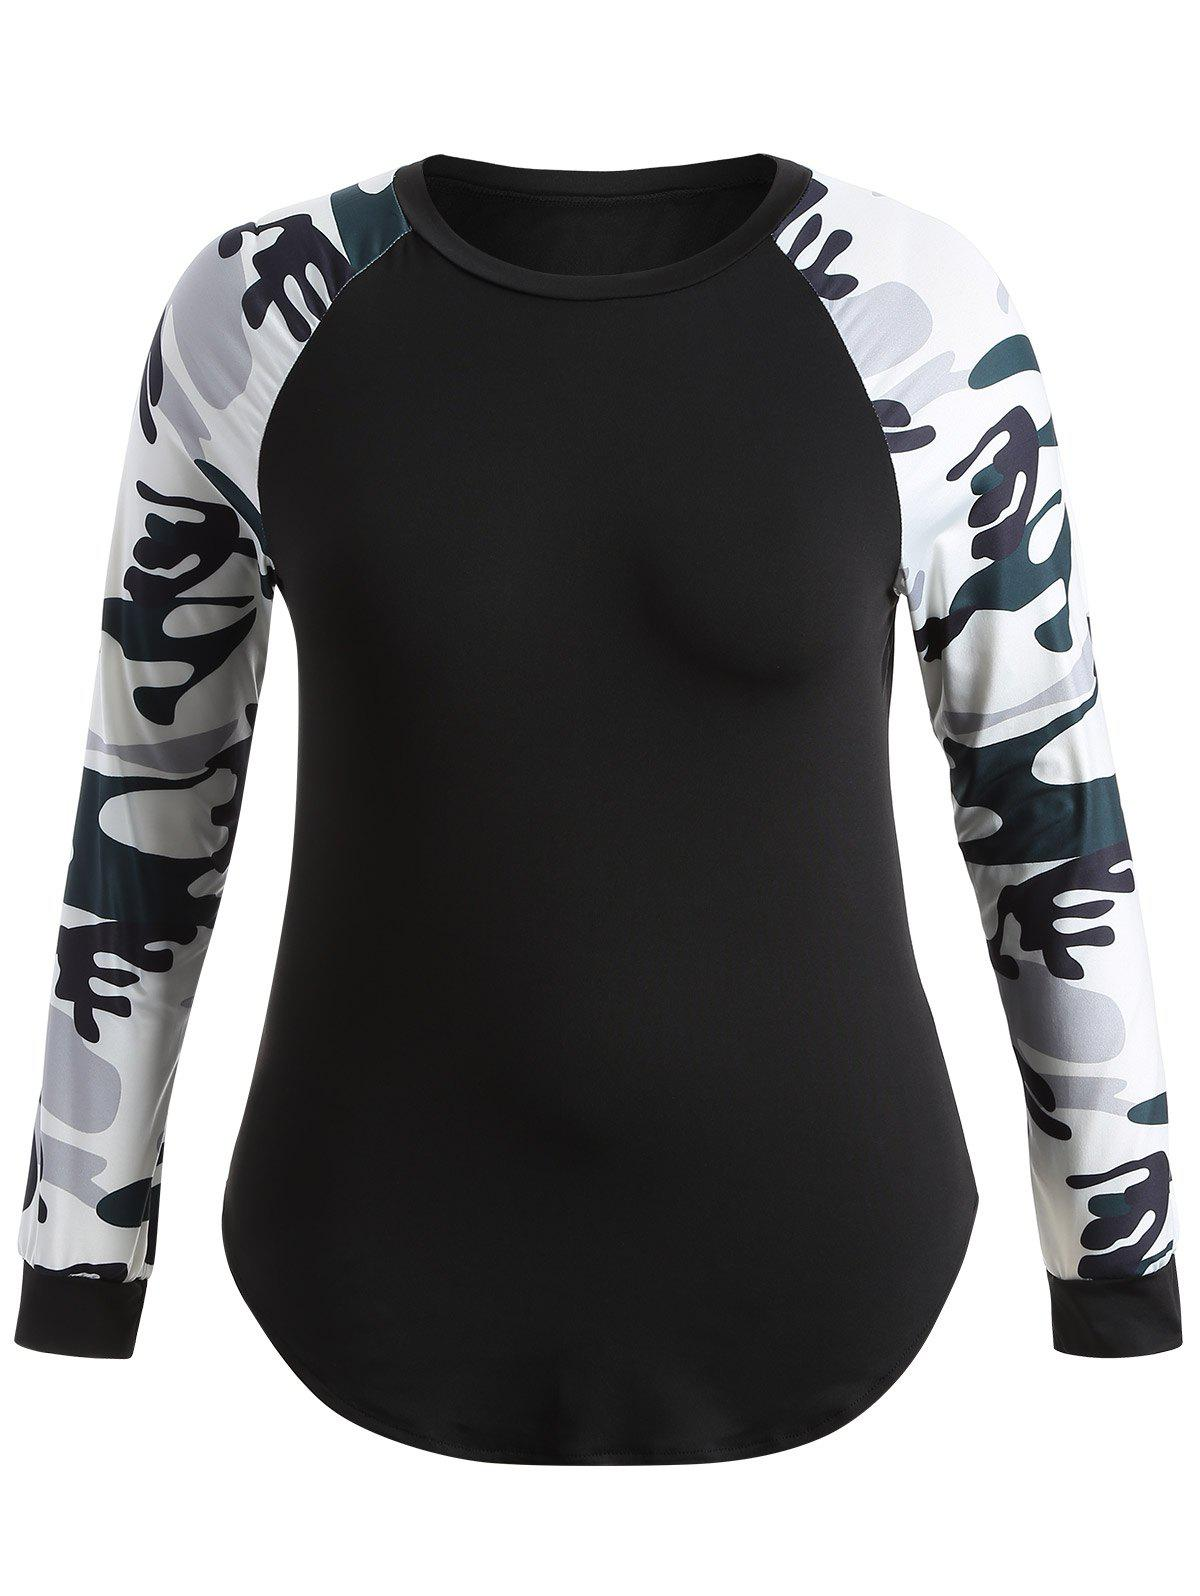 Plus Size Camo Splicing Raglan Sleeve T-ShirtWOMEN<br><br>Size: 3XL; Color: COLORMIX; Material: Cotton,Polyester; Shirt Length: Long; Sleeve Length: Full; Collar: Round Neck; Style: Casual; Season: Fall,Spring; Embellishment: Spliced; Pattern Type: Others; Weight: 0.350kg; Package Contents: 1 x T-Shirt;